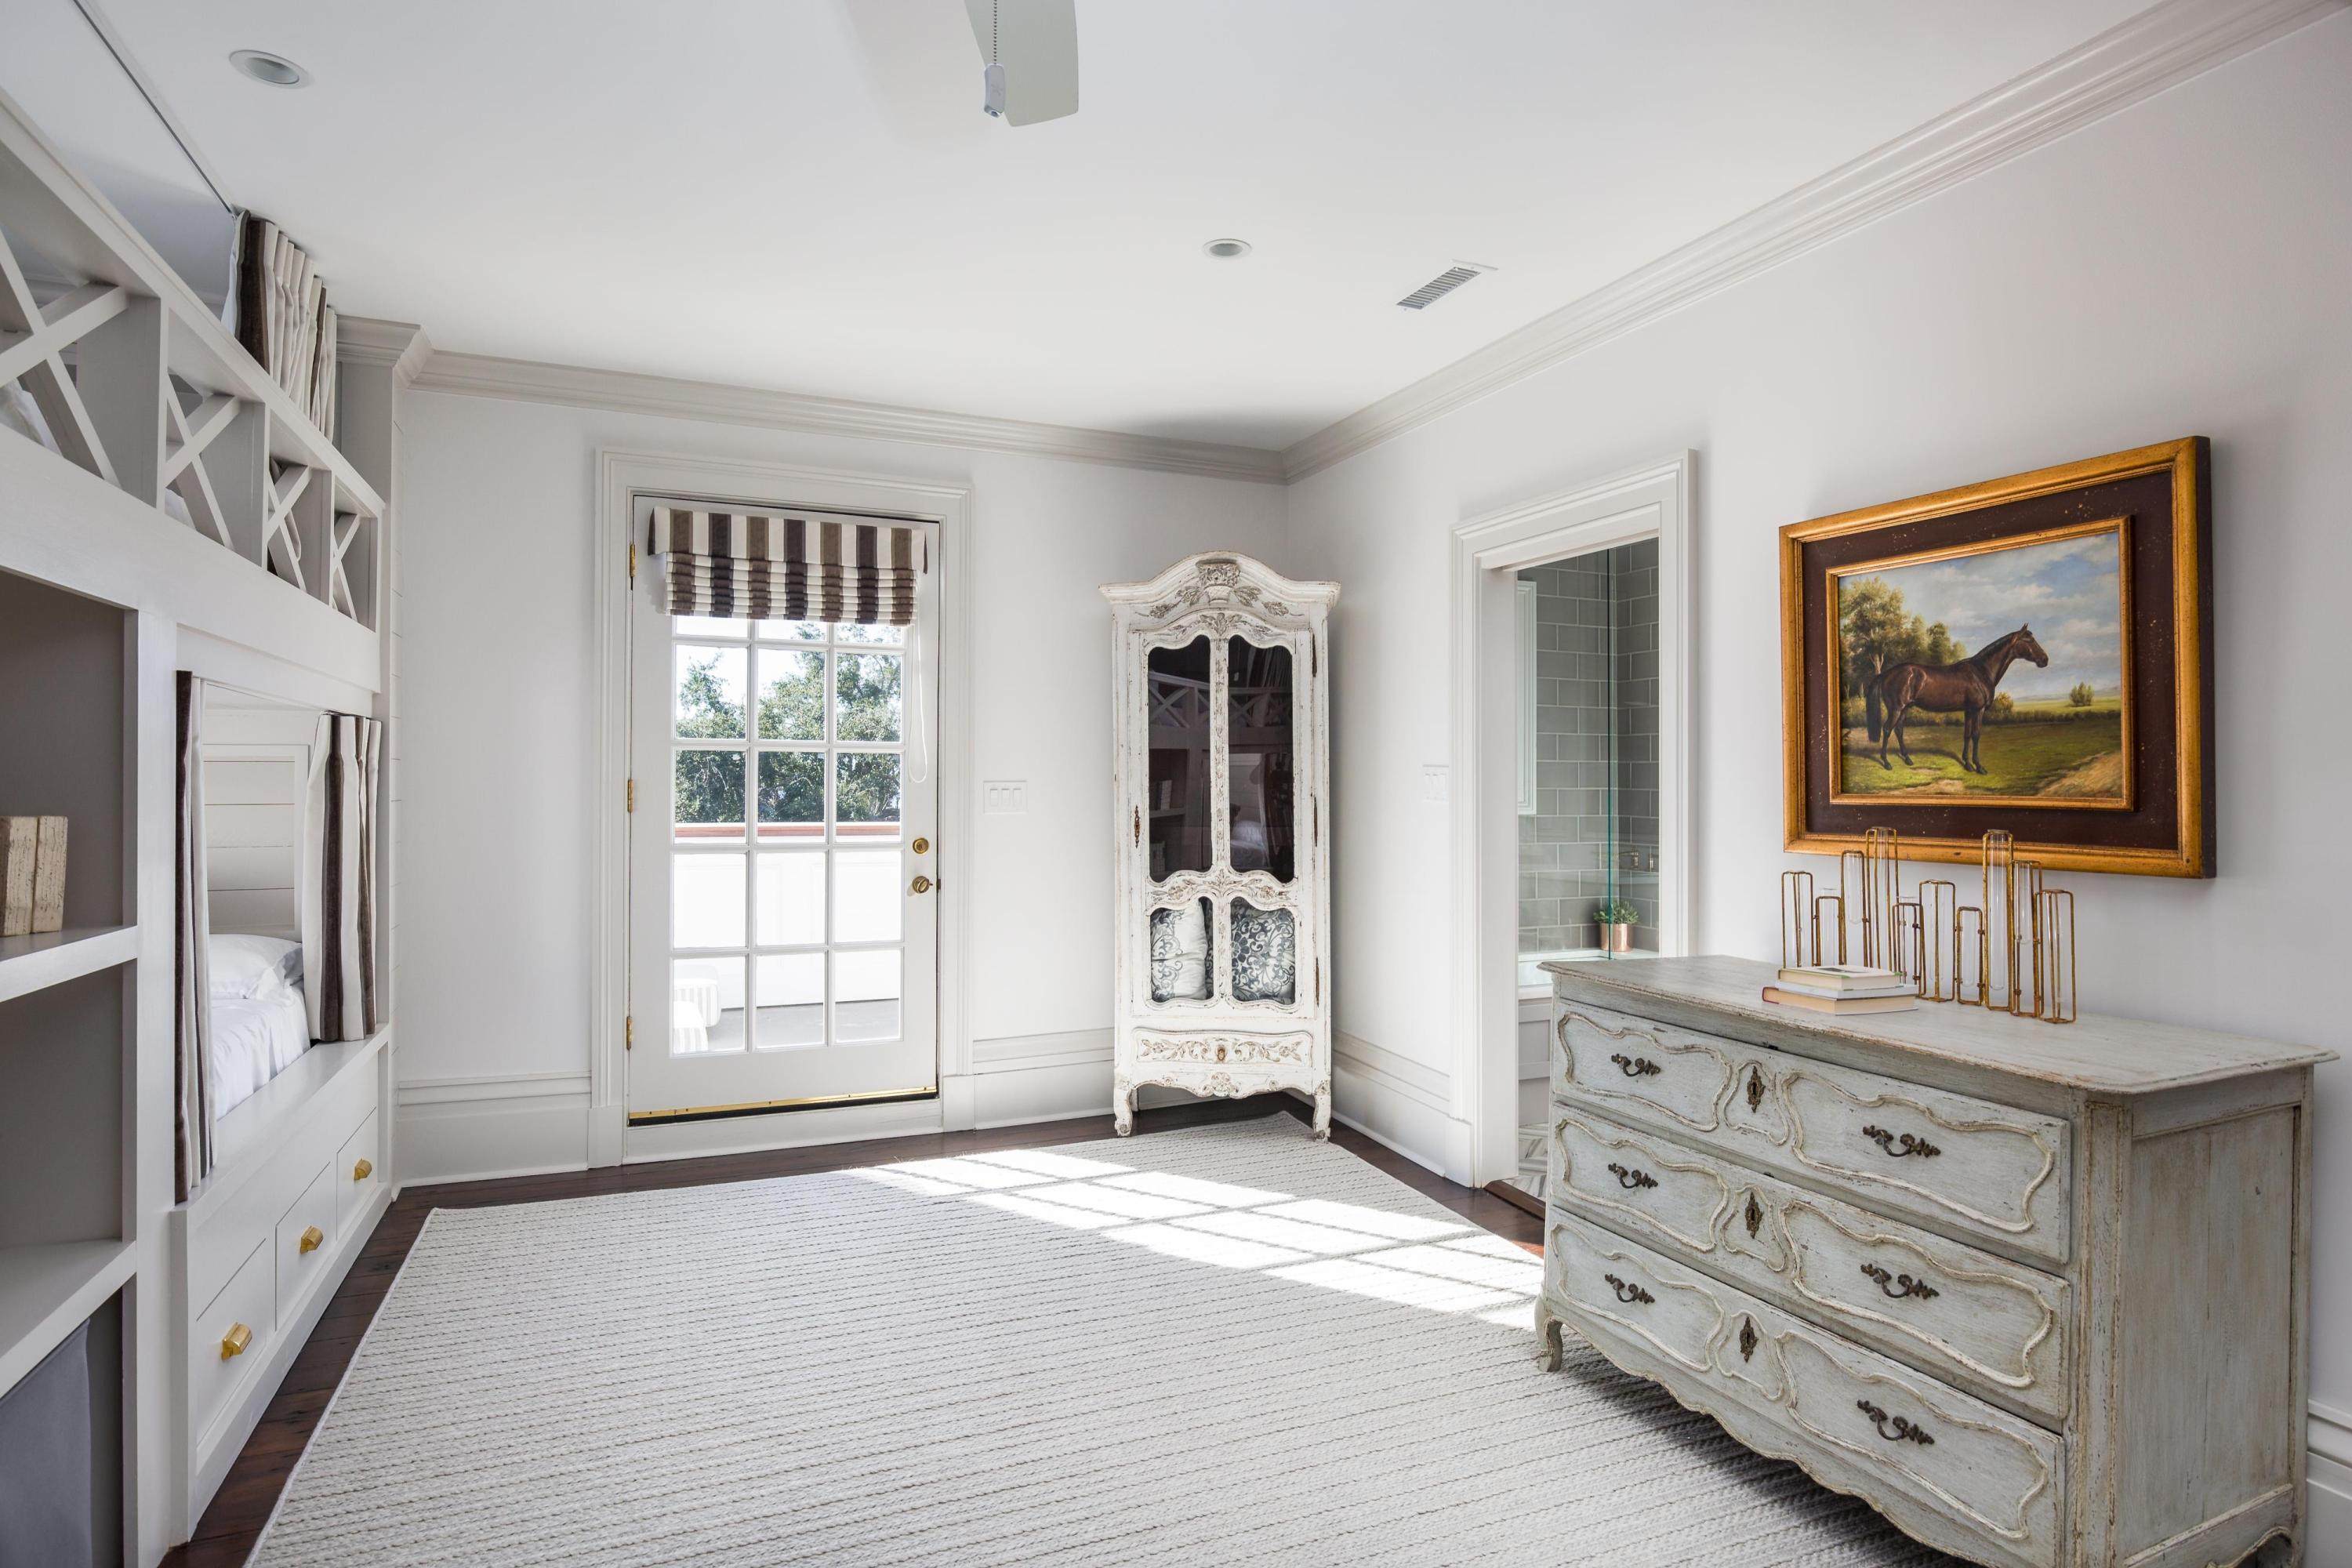 South of Broad Homes For Sale - 27 Lamboll, Charleston, SC - 28